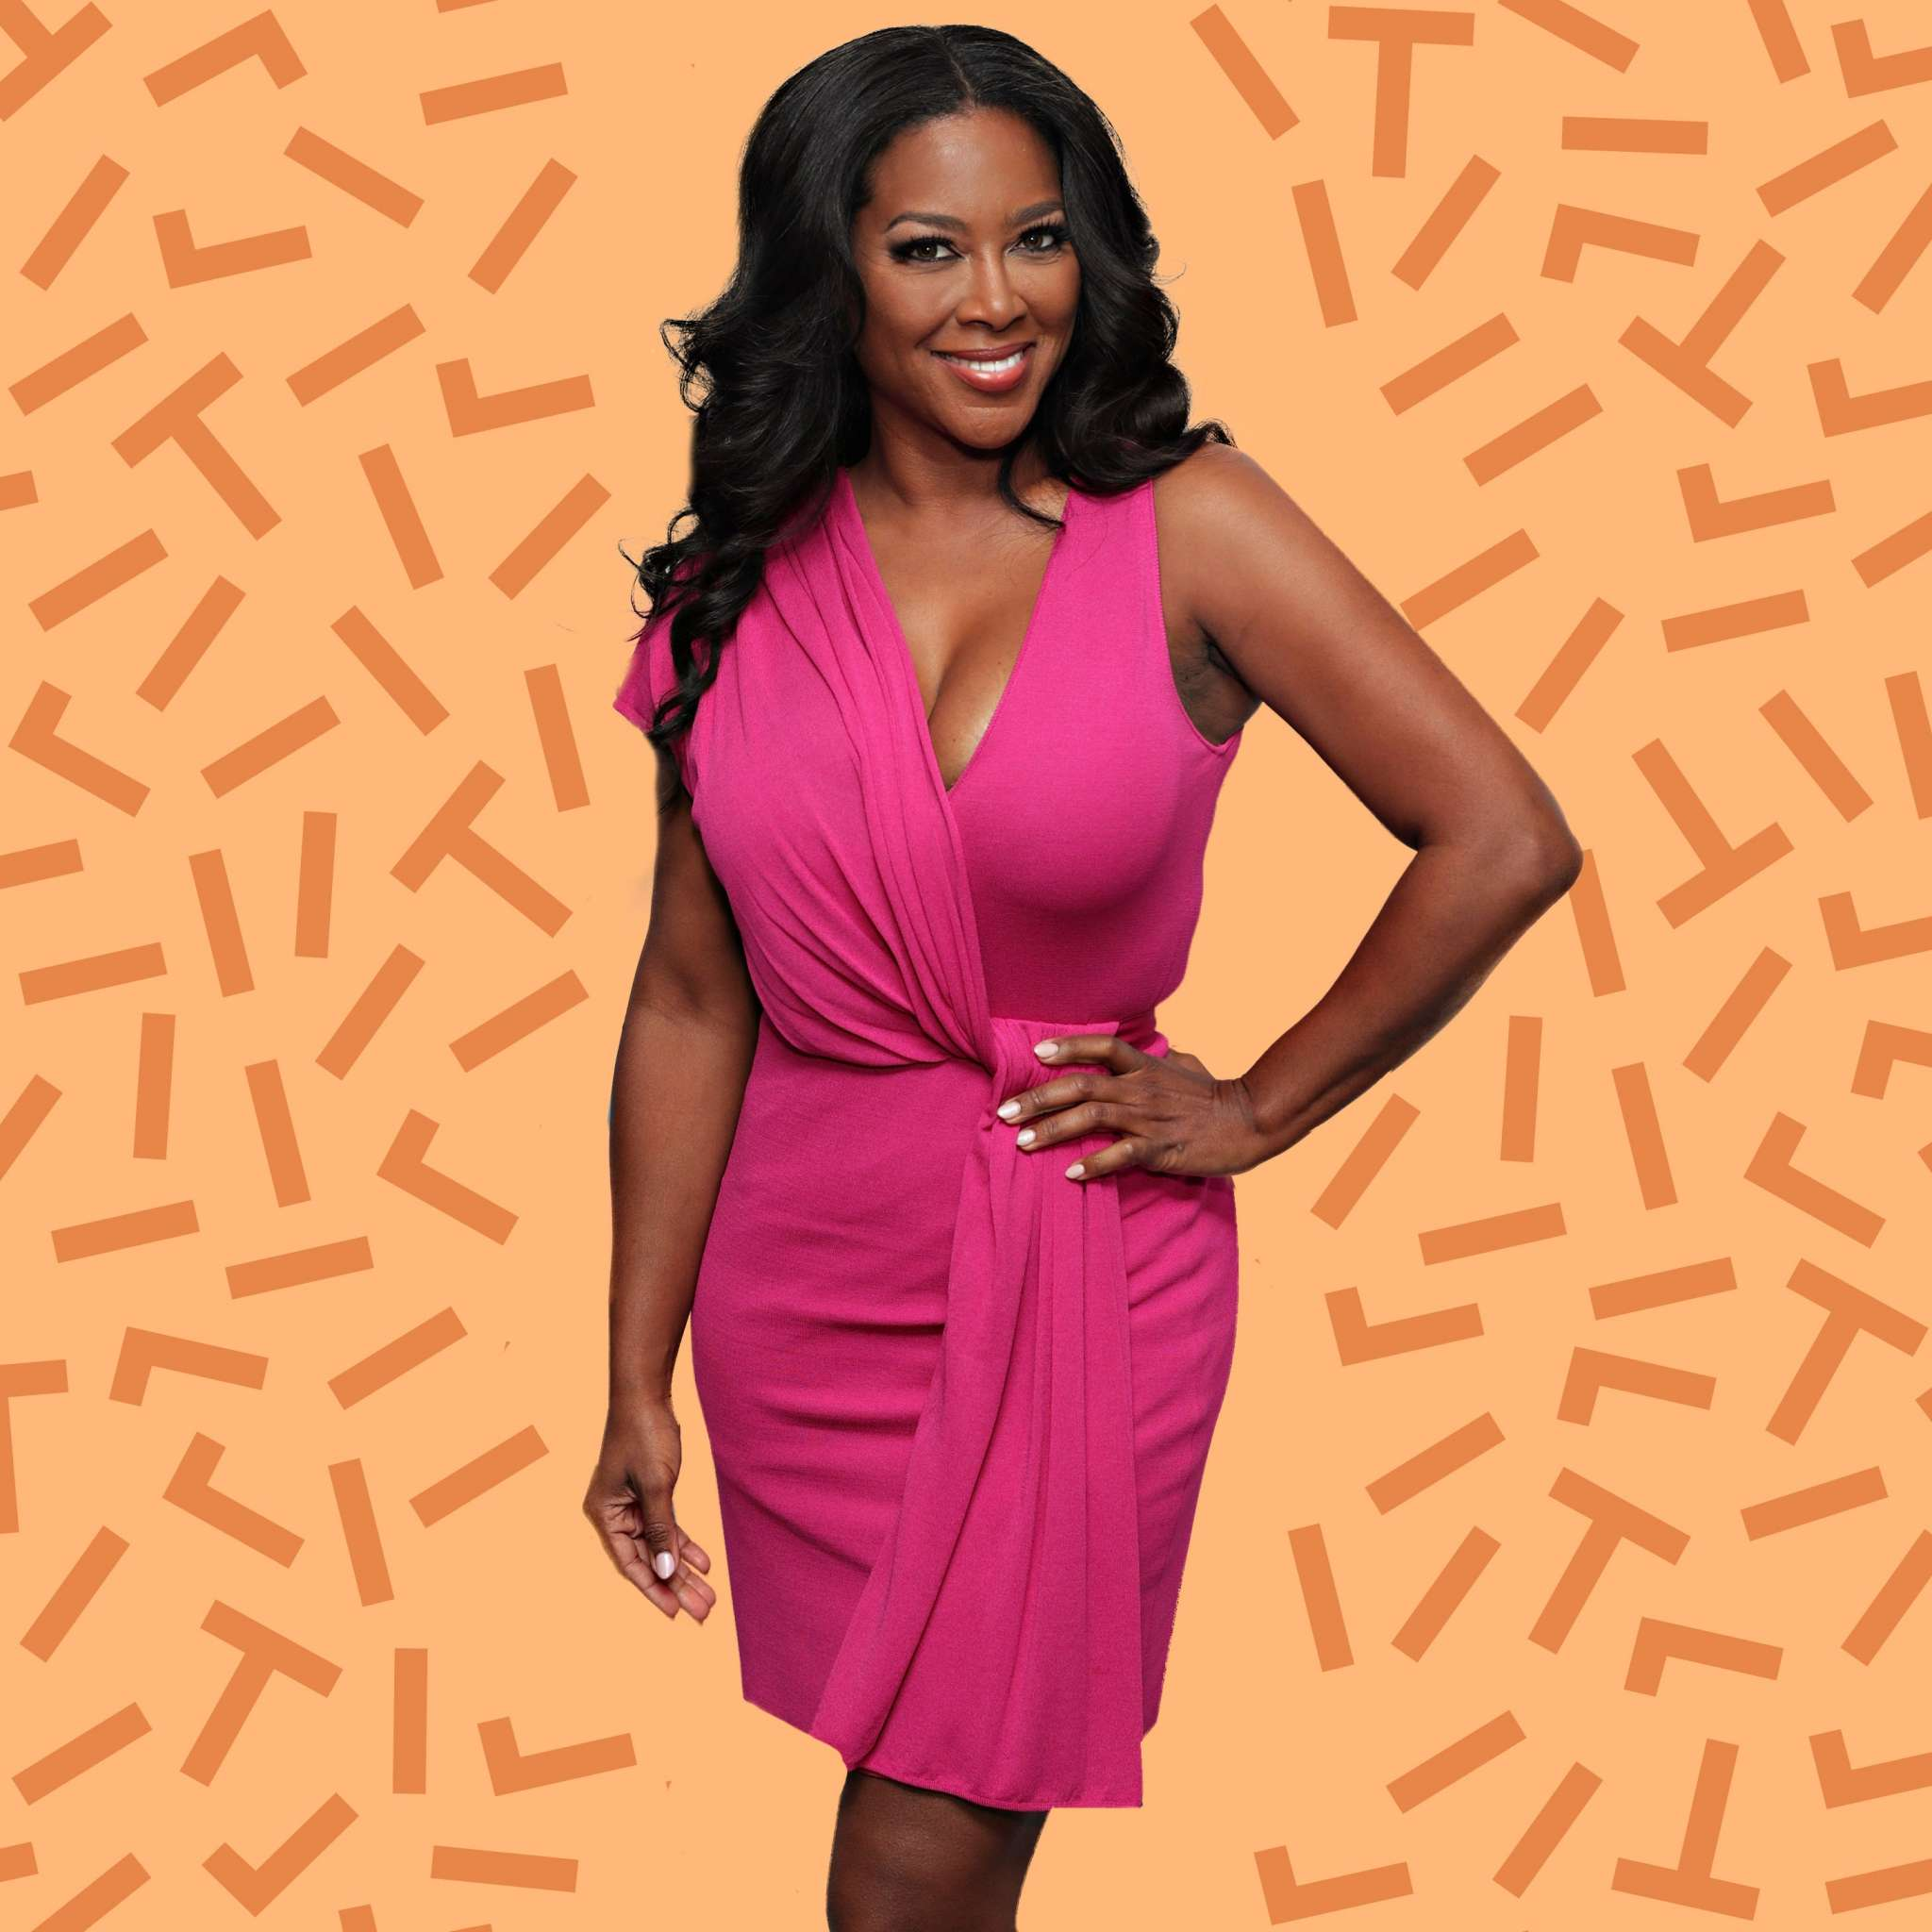 kenya-moore-is-praising-brandon-armstrong-check-out-the-message-she-shared